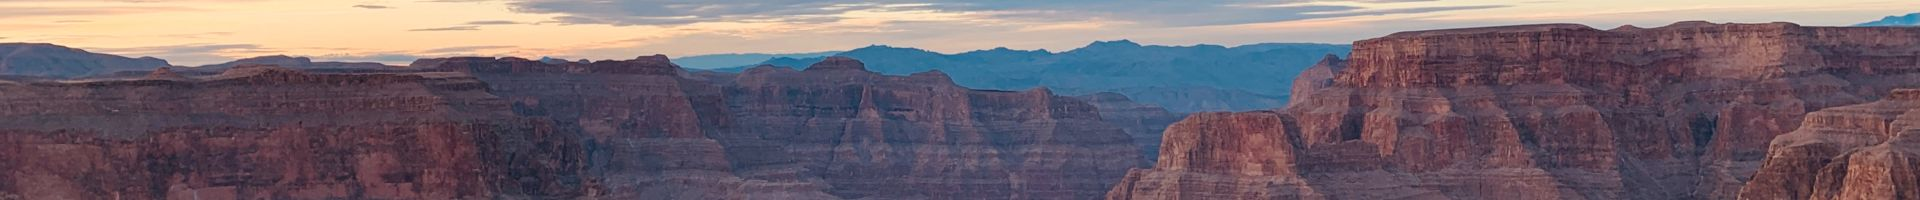 Panoramic view of the Grand Canyon West Rim during one of GCSA's Grand Canyon West Rim Tours